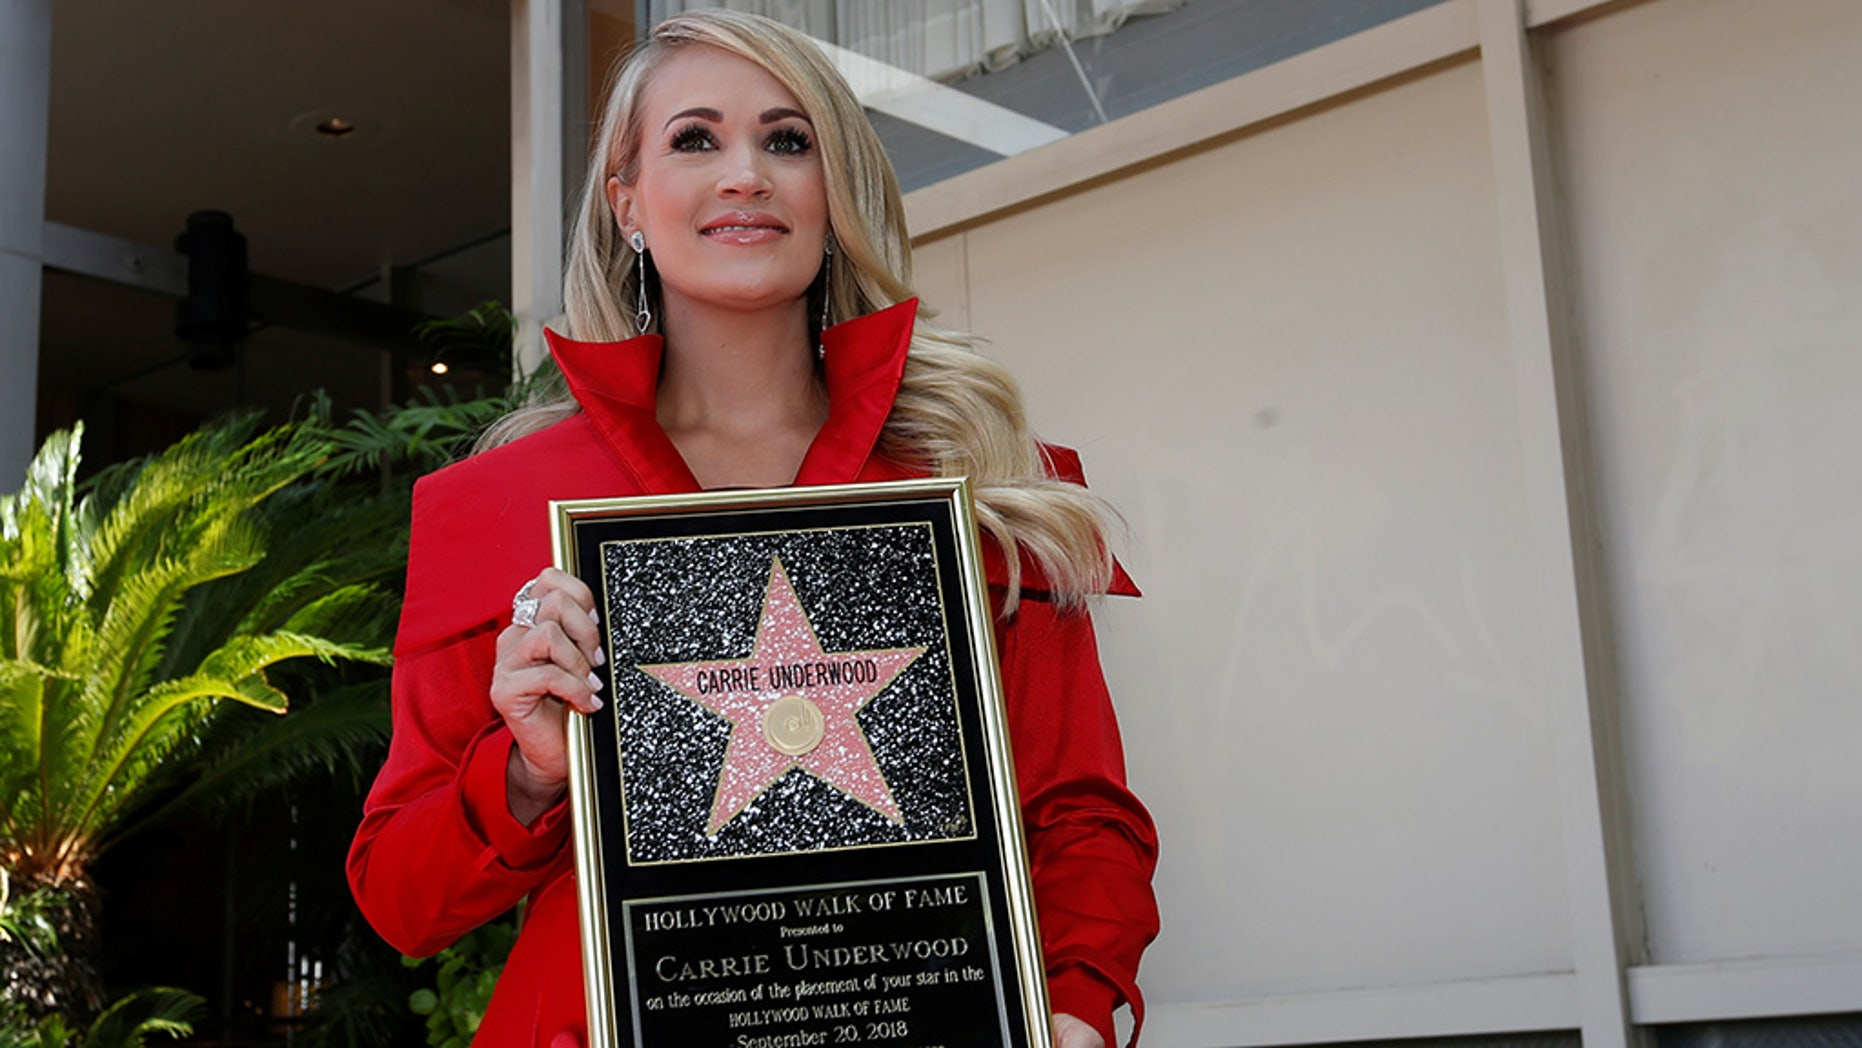 Carrie Underwood attends the unveiling of her star on the Hollywood Walk of Fame in Los Angeles on Sept. 20, 2018.